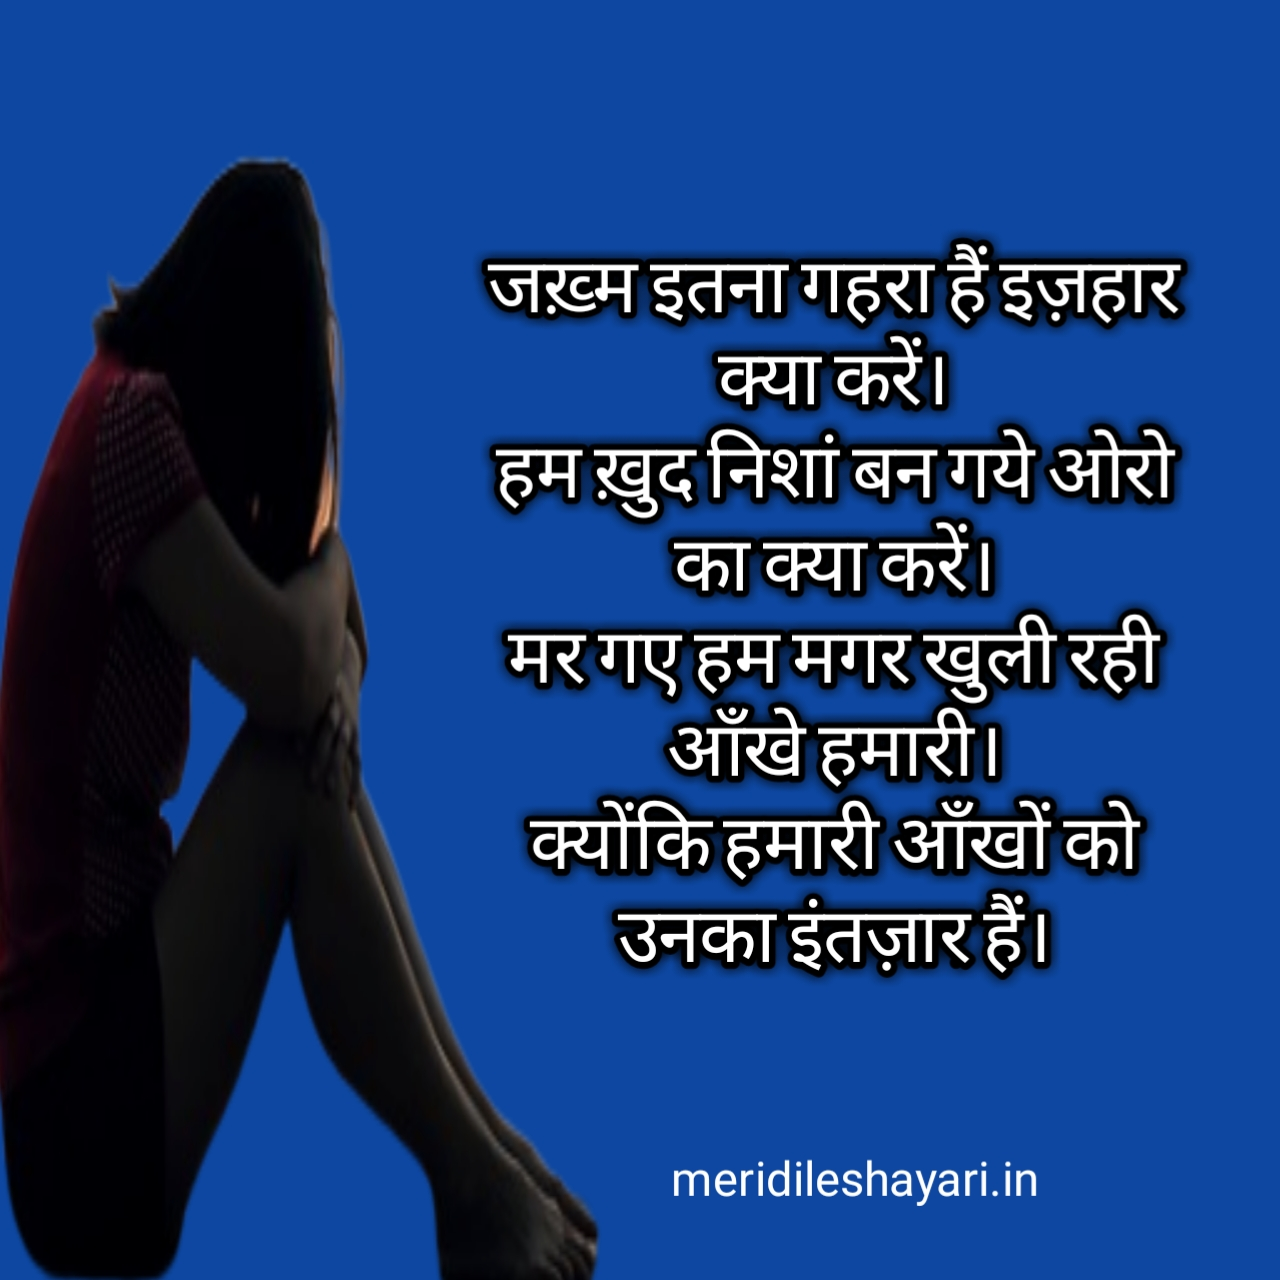 Zakhmi Dil Shayari images,zakhmi dil shayari pic wallpaper, zakhmi dil shayari photo, zakhmi dil shayari photo download, zakhmi dil shayari image in hindi, jakhmi dil shayari image download, zakhmi dil shayari image hd.